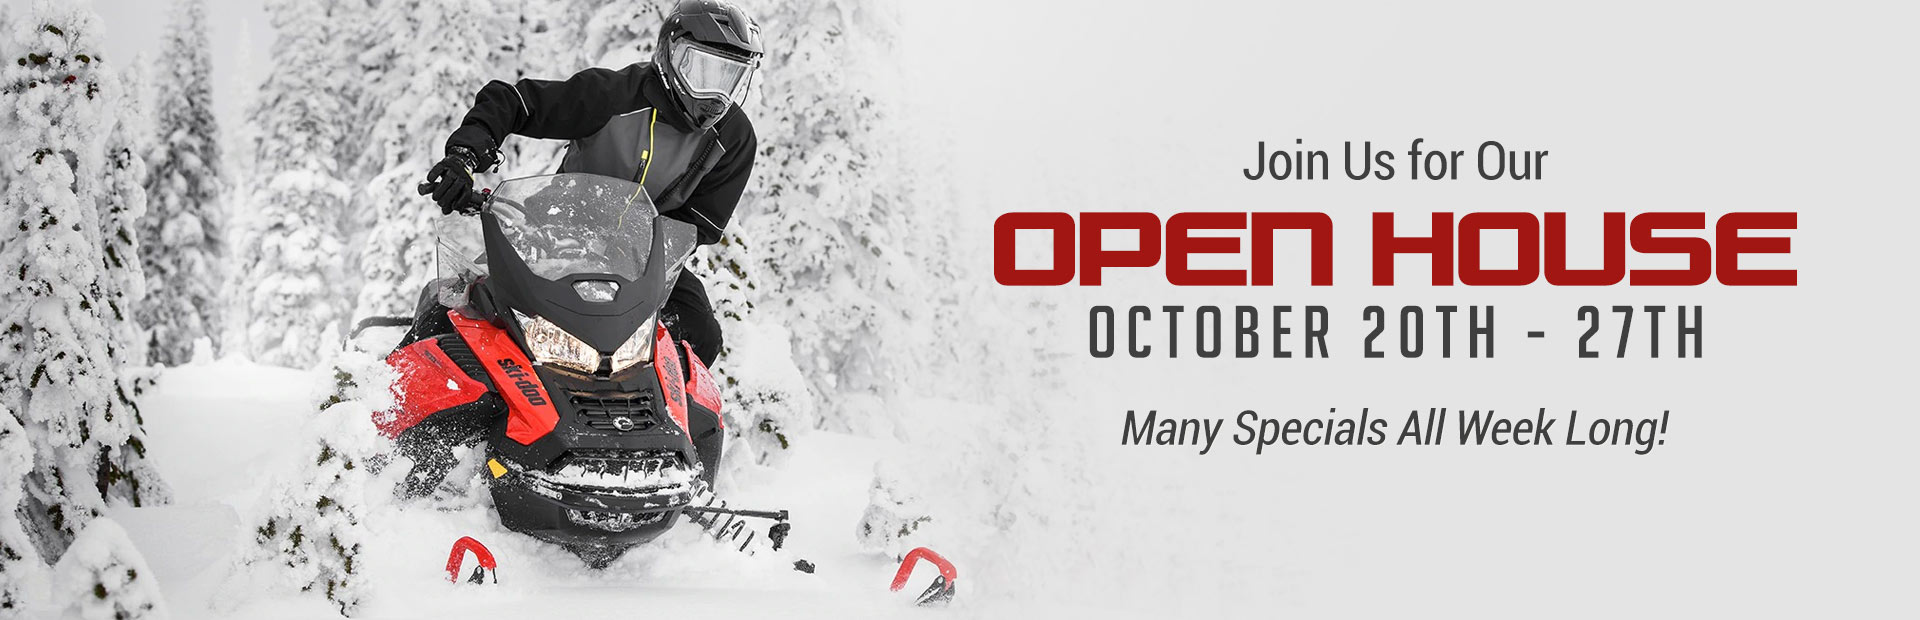 Join us October 20th - 27th for our Open House!